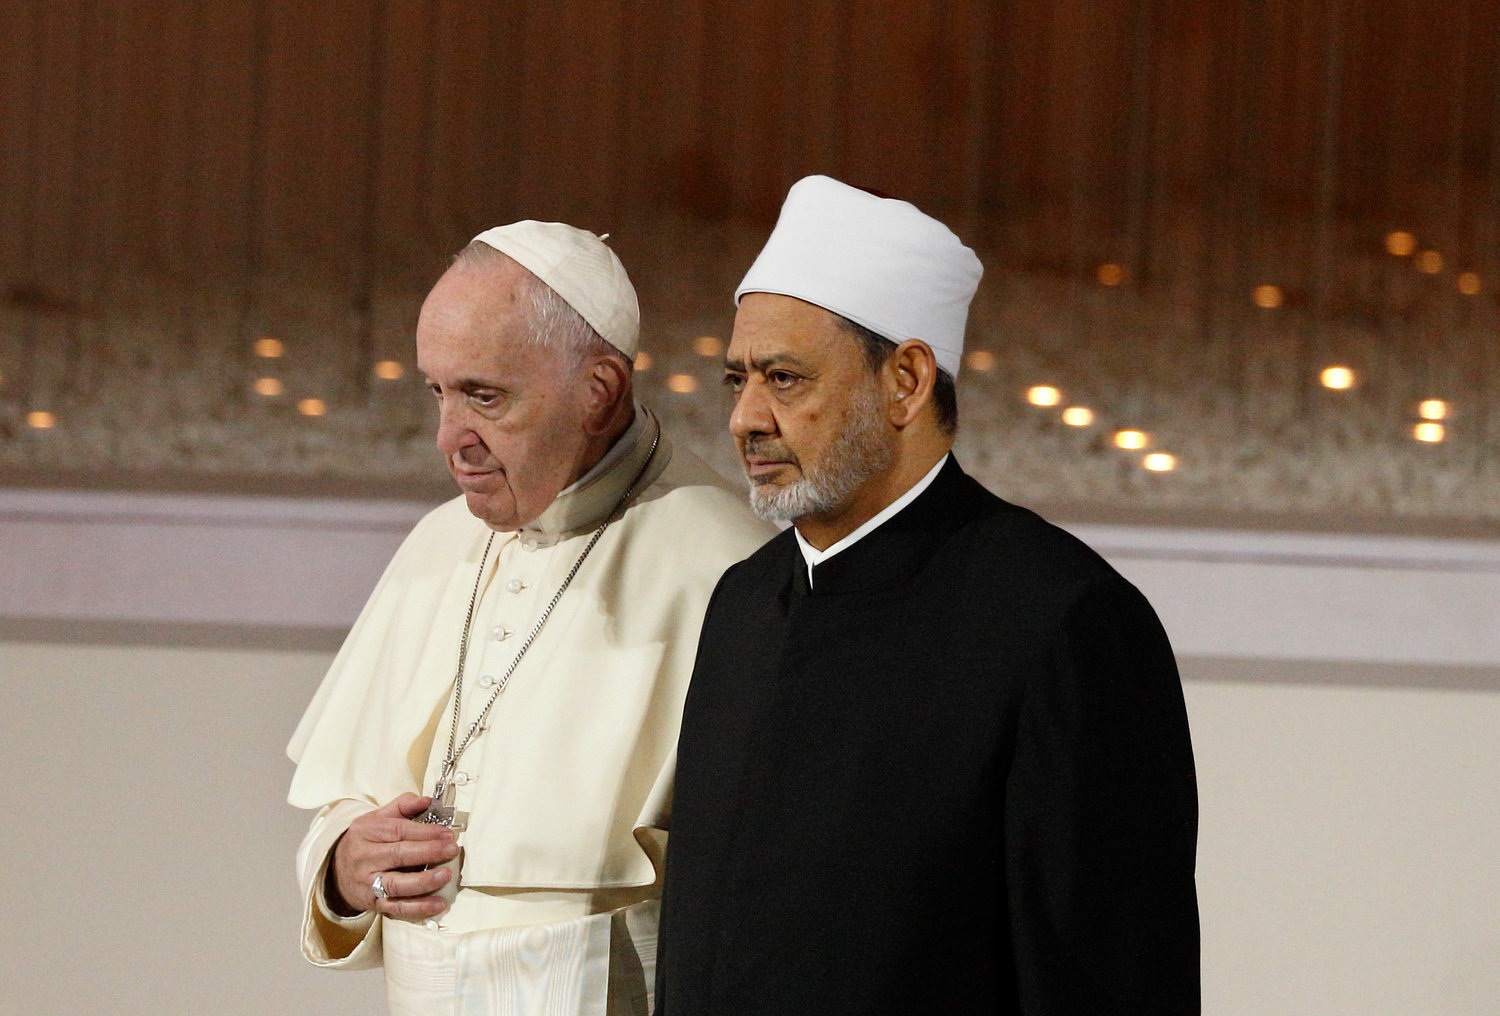 Pope Francis and Sheik Ahmad el-Tayeb, grand imam of Egypt's al-Azhar mosque and university, leave an interreligious meeting at the Founder's Memorial in Abu Dhabi, United Arab Emirates, Feb. 4.